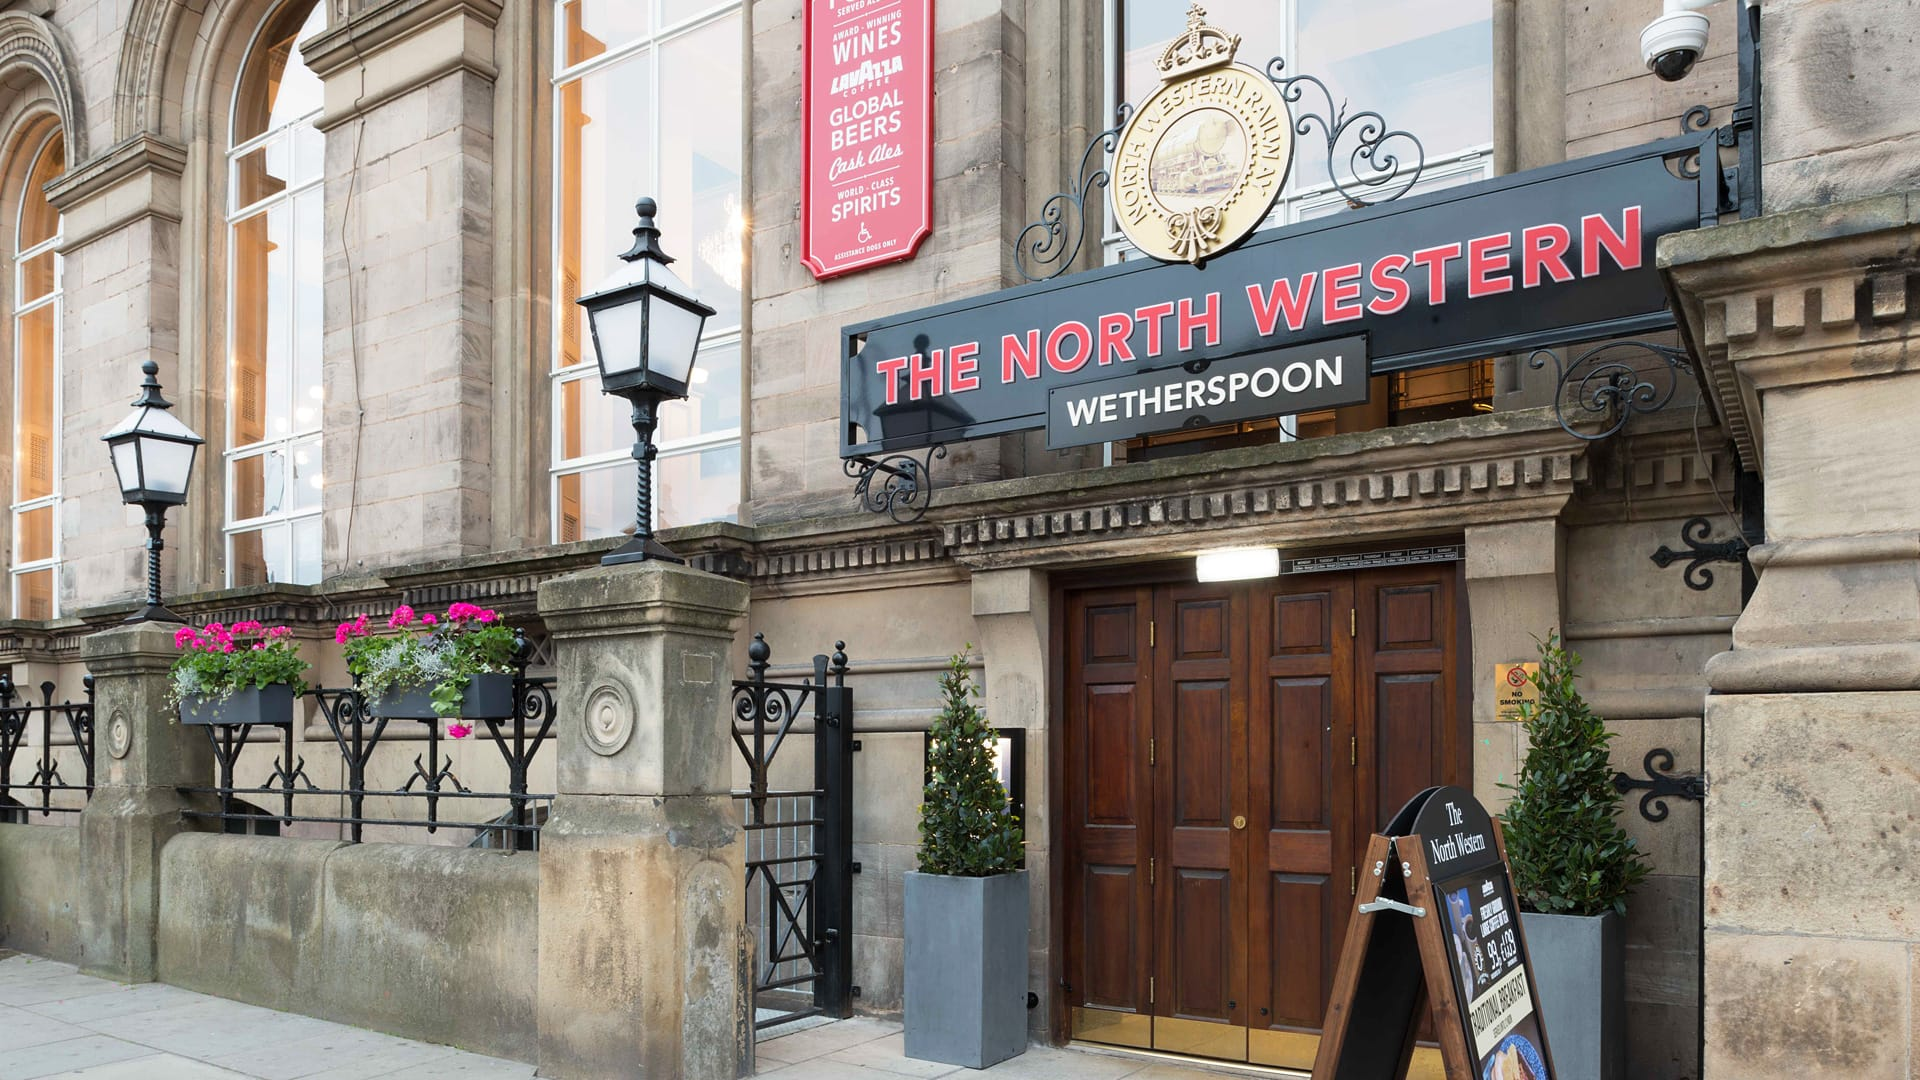 J D Wetherspoon The North Western P/H, Liverpool